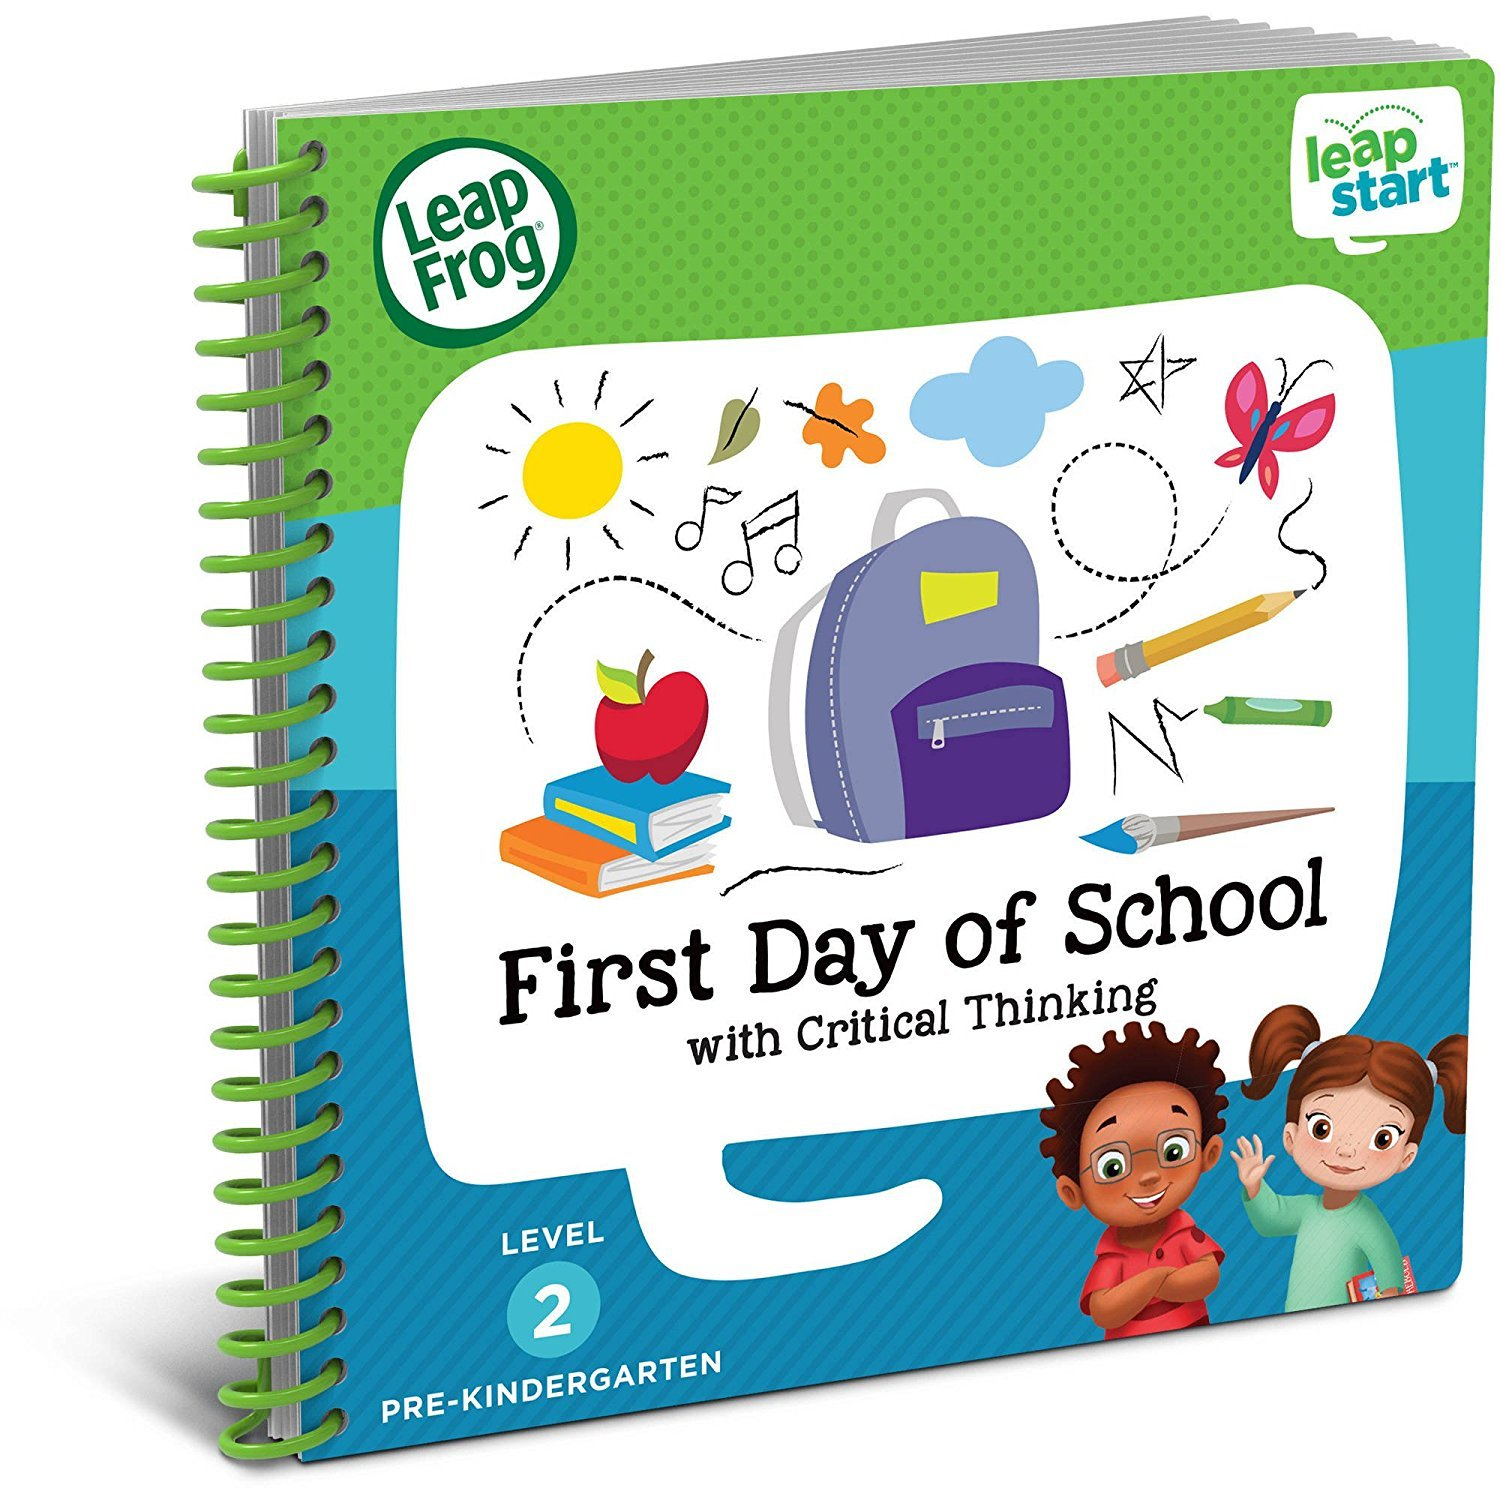 LeapFrog LeapStart Preschool, Pre-Kindergarten Interactive Learning System For Kids Level 2 Ages 2-4 With Junior Activity Books: STEM, Math, Read & Write & First Day School Fun Activity Bundle by LeapFrog (Image #6)